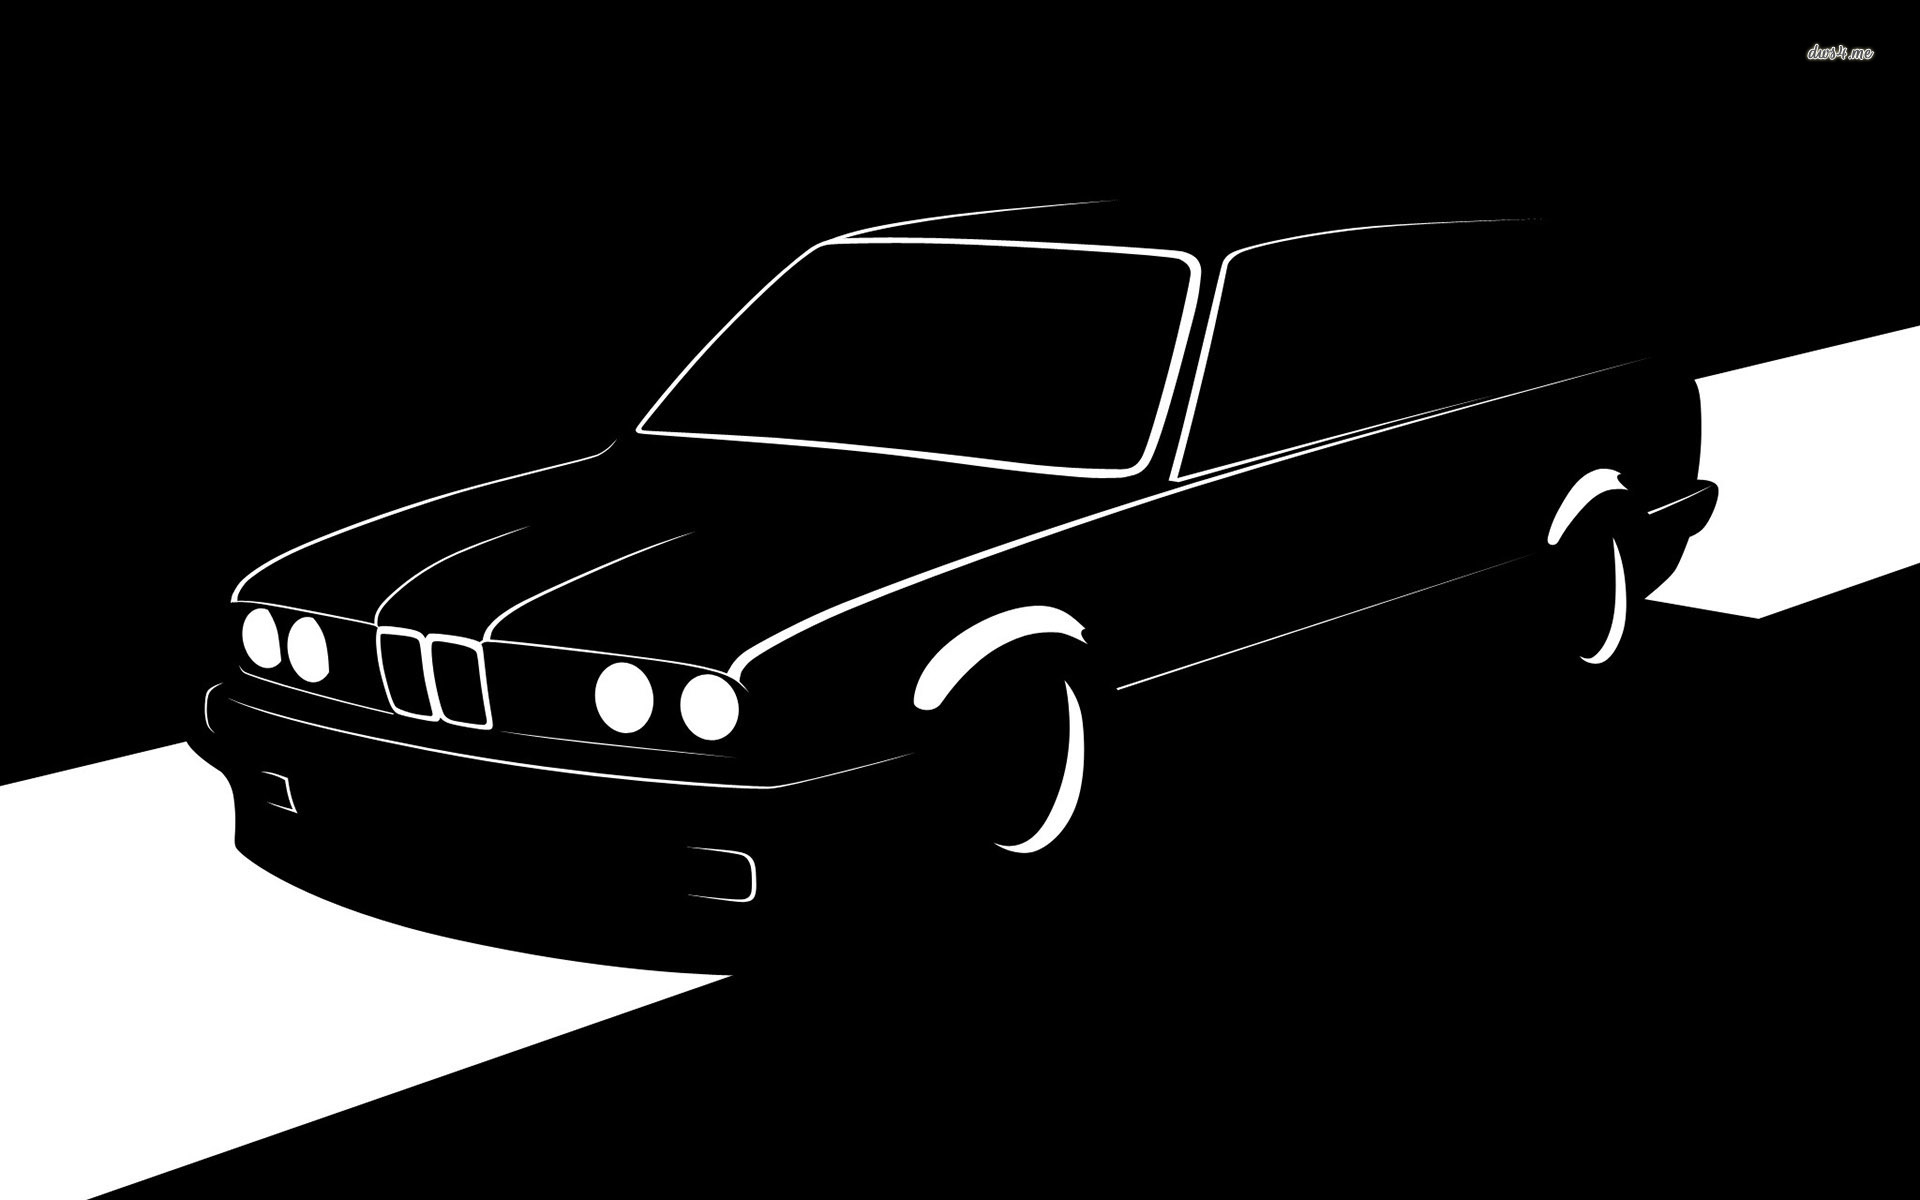 Bmw E30 Touring Silhouette Wallpaper Bmw E30 Silhouette 331774 Hd Wallpaper Backgrounds Download